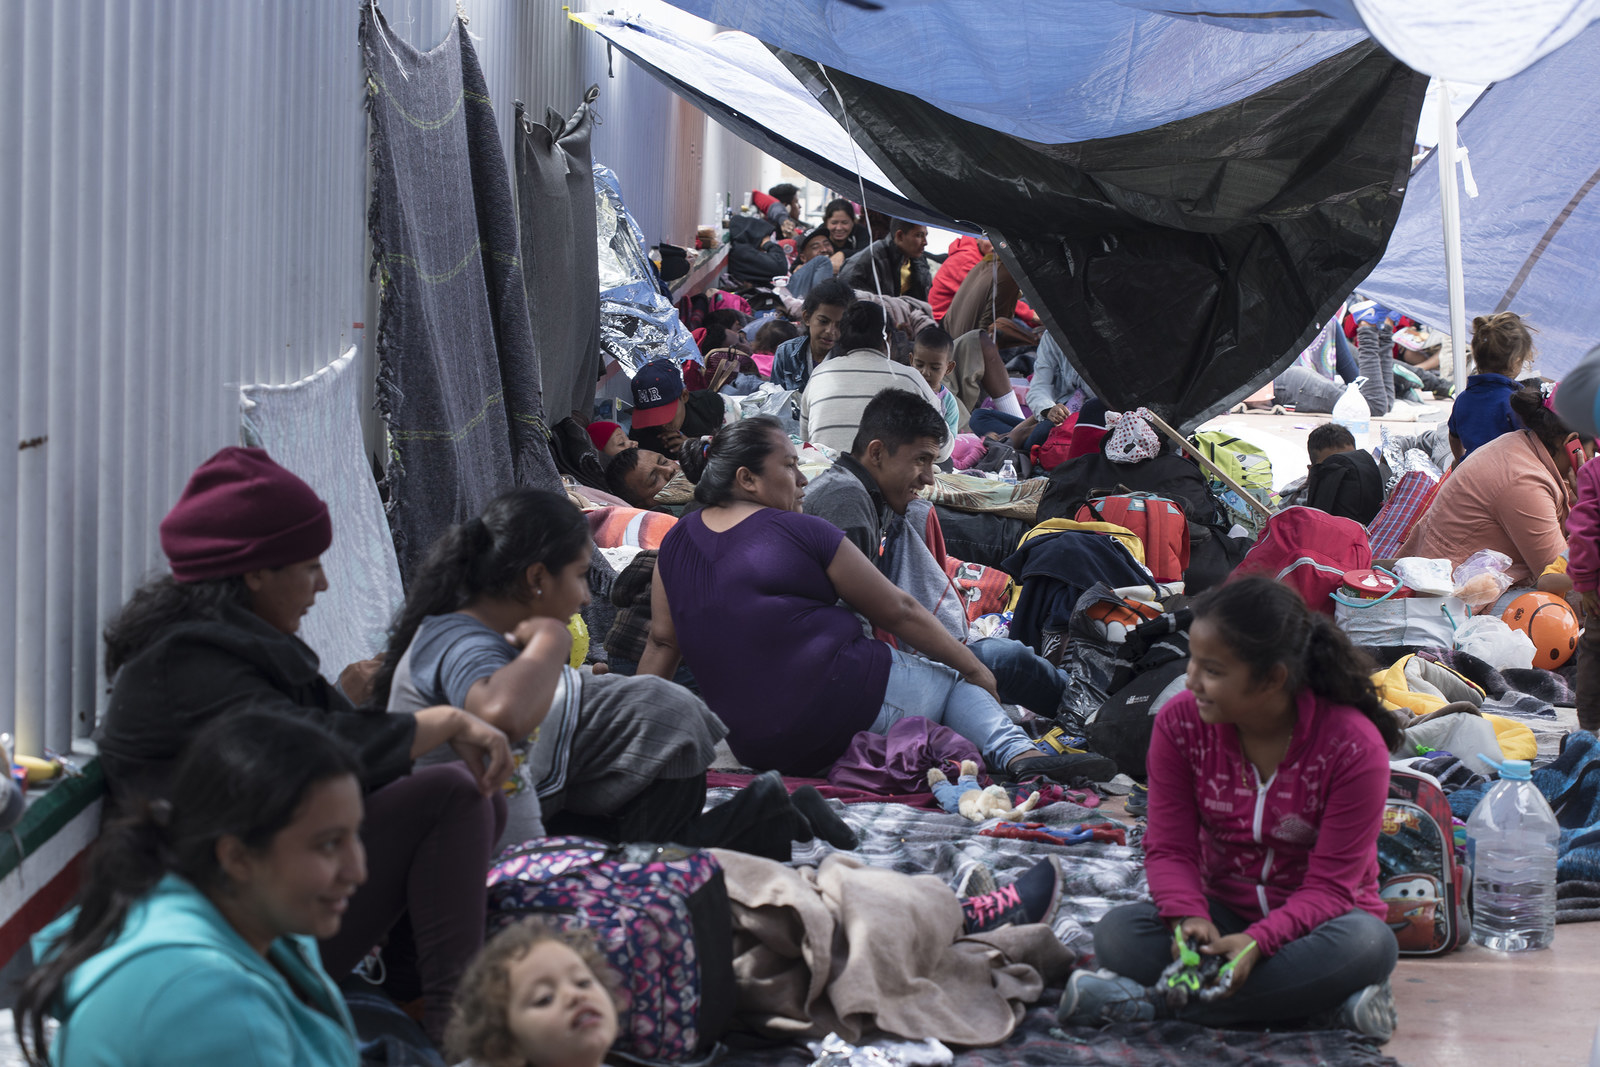 The Trump Administration Has Sent The First Asylum-Seeking Families Back To Mexico